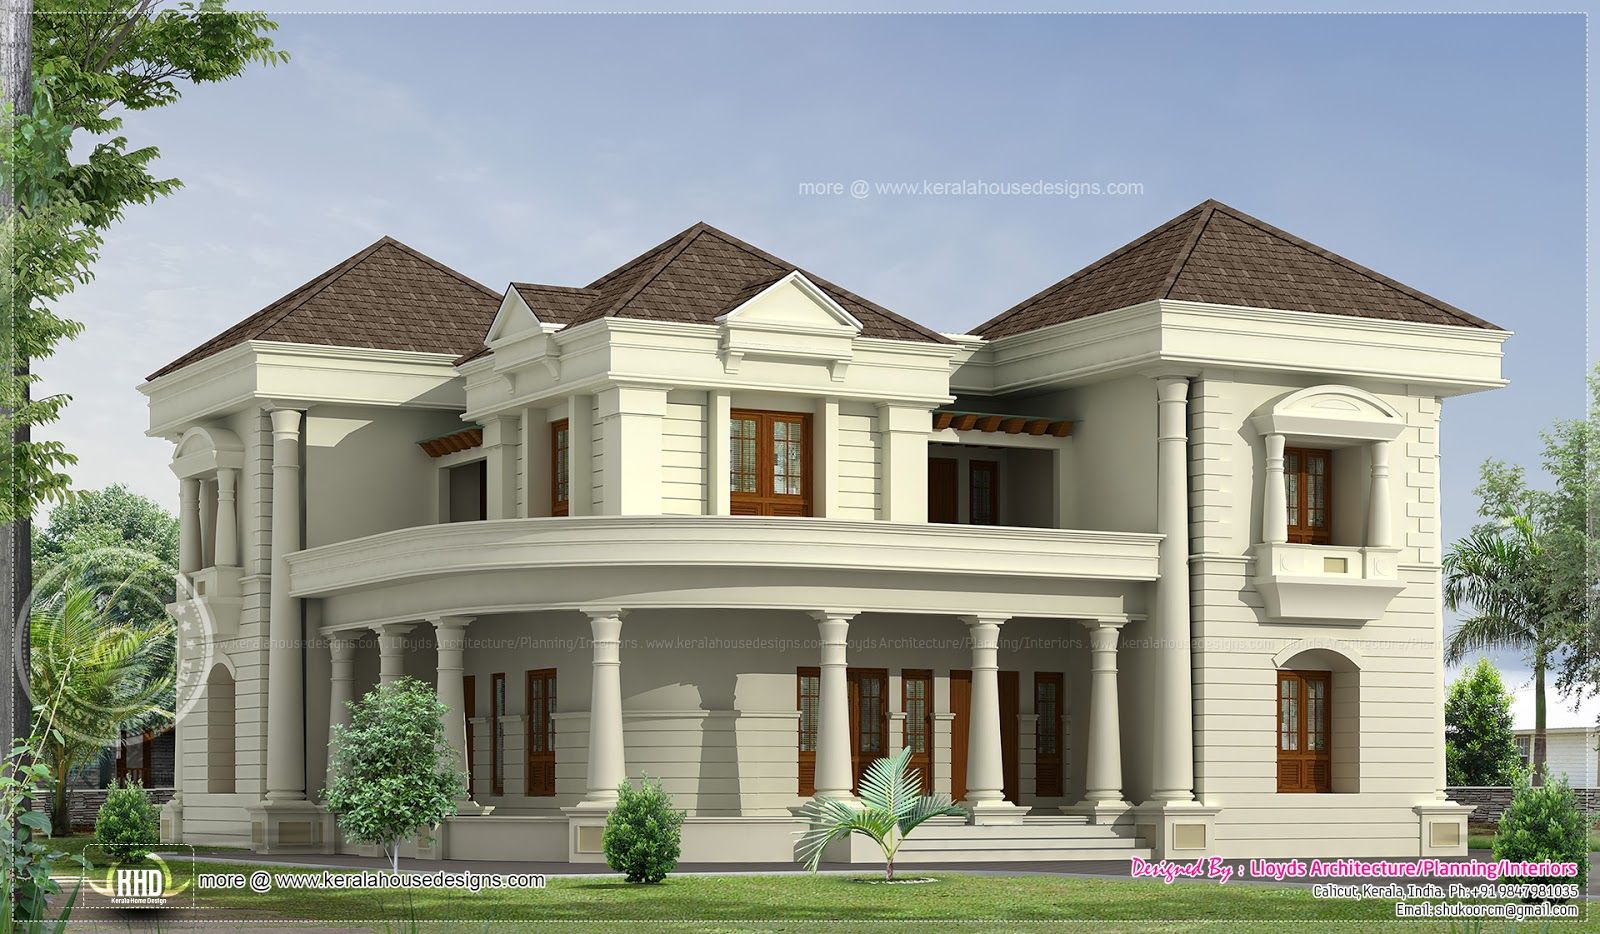 Modern bungalows bedroom luxurious bungalow floor plan for Bungalow floor plans